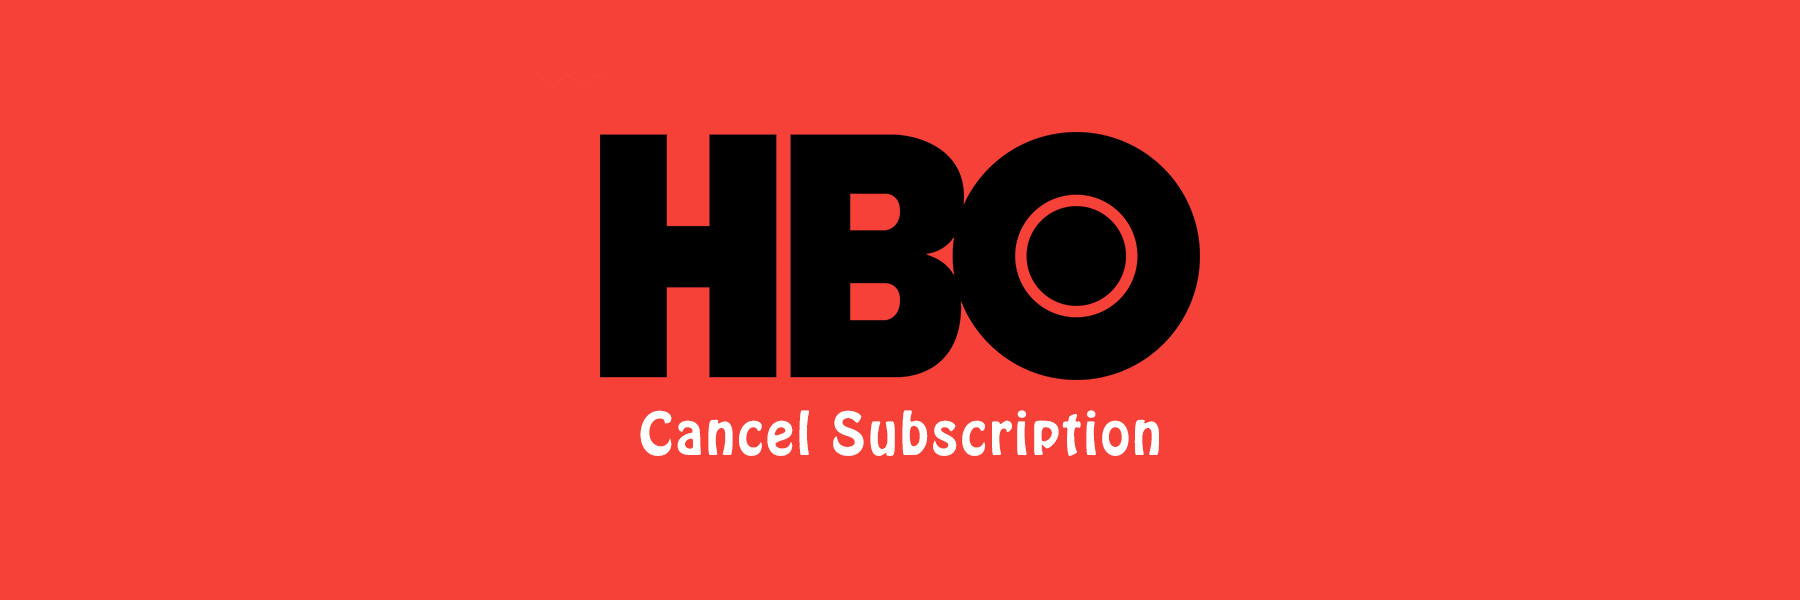 How to cancel the HBO subscription plans